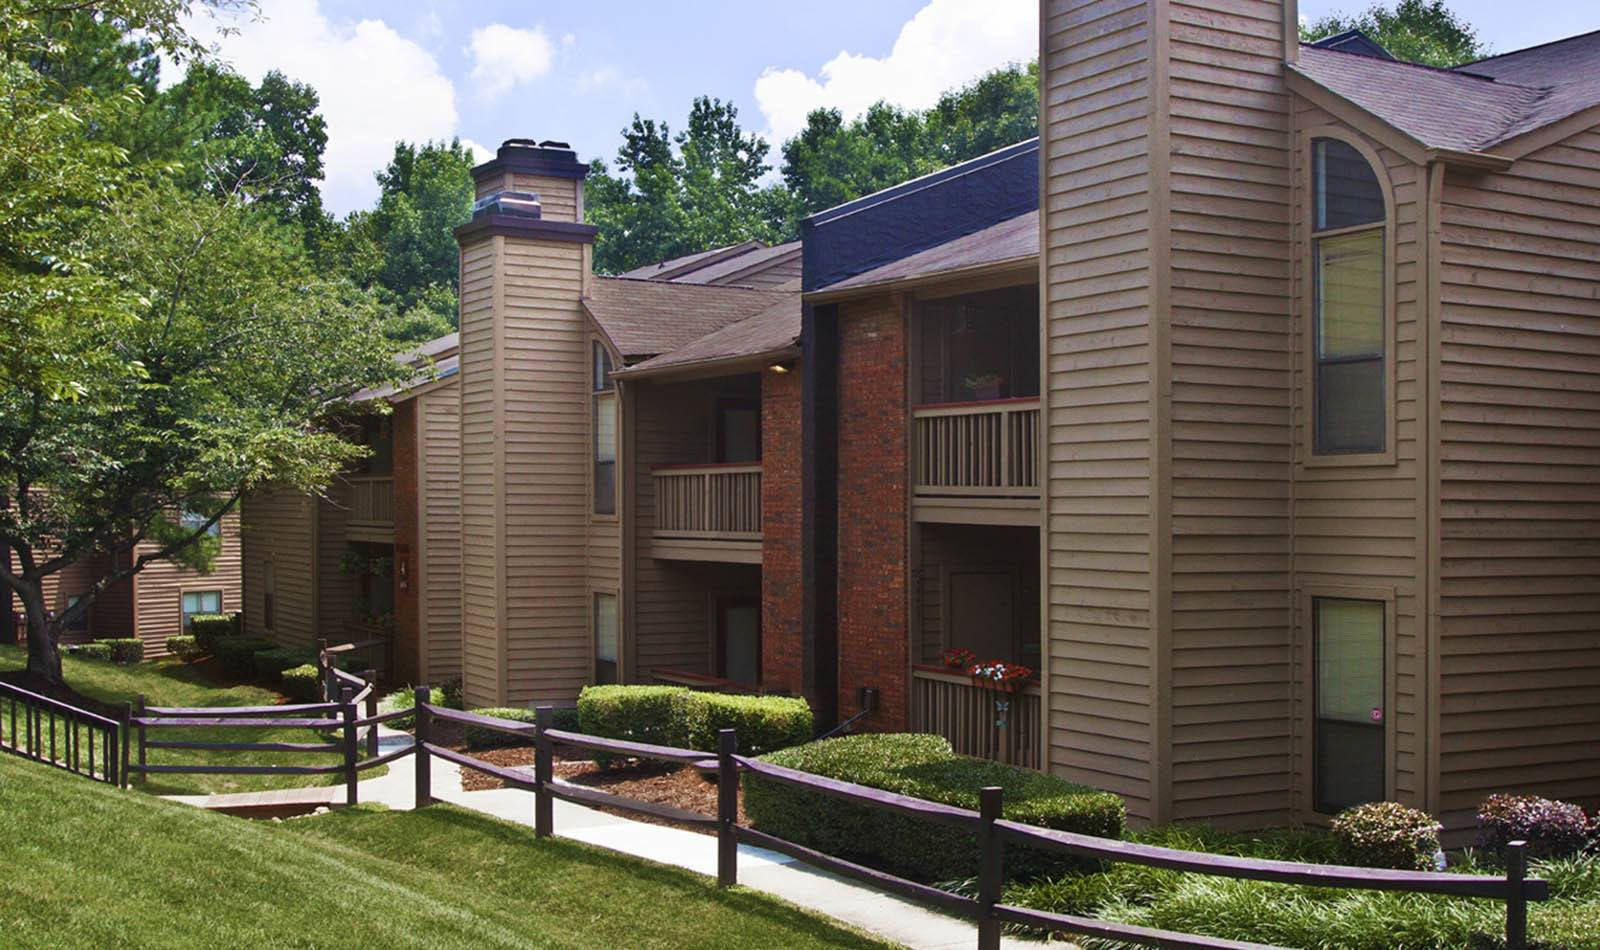 Apartment Exterior at Paces Pointe in Matthews, NC